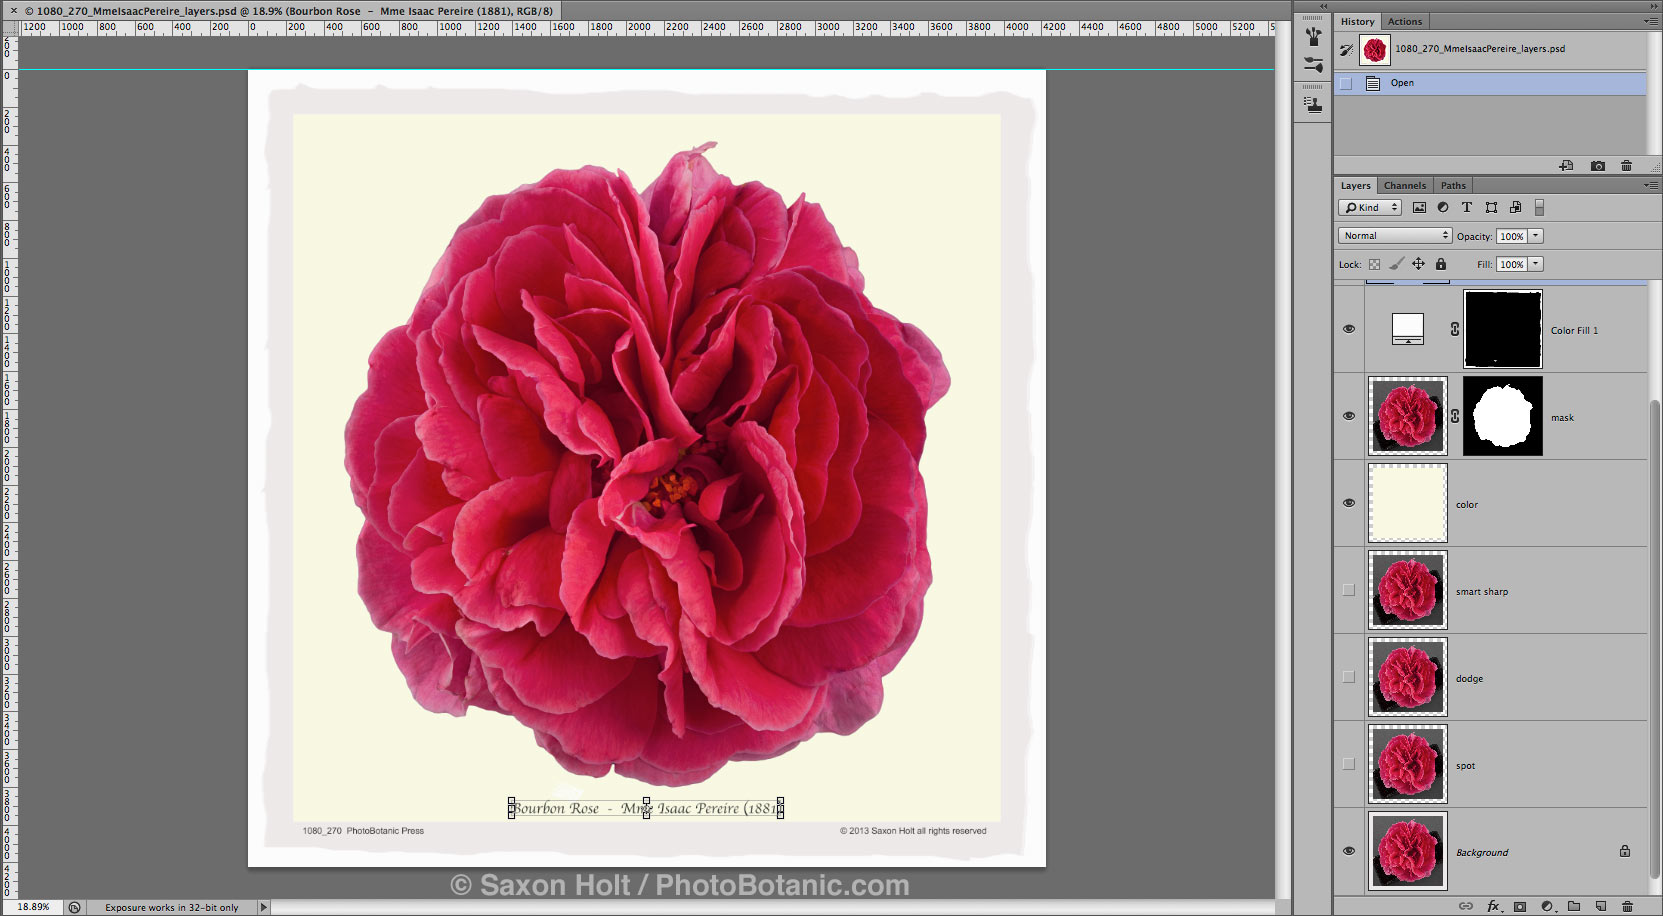 screenshot focus stack rose Mme Isaac Pereire in photoshop for silhouette vinatge rose file 1080